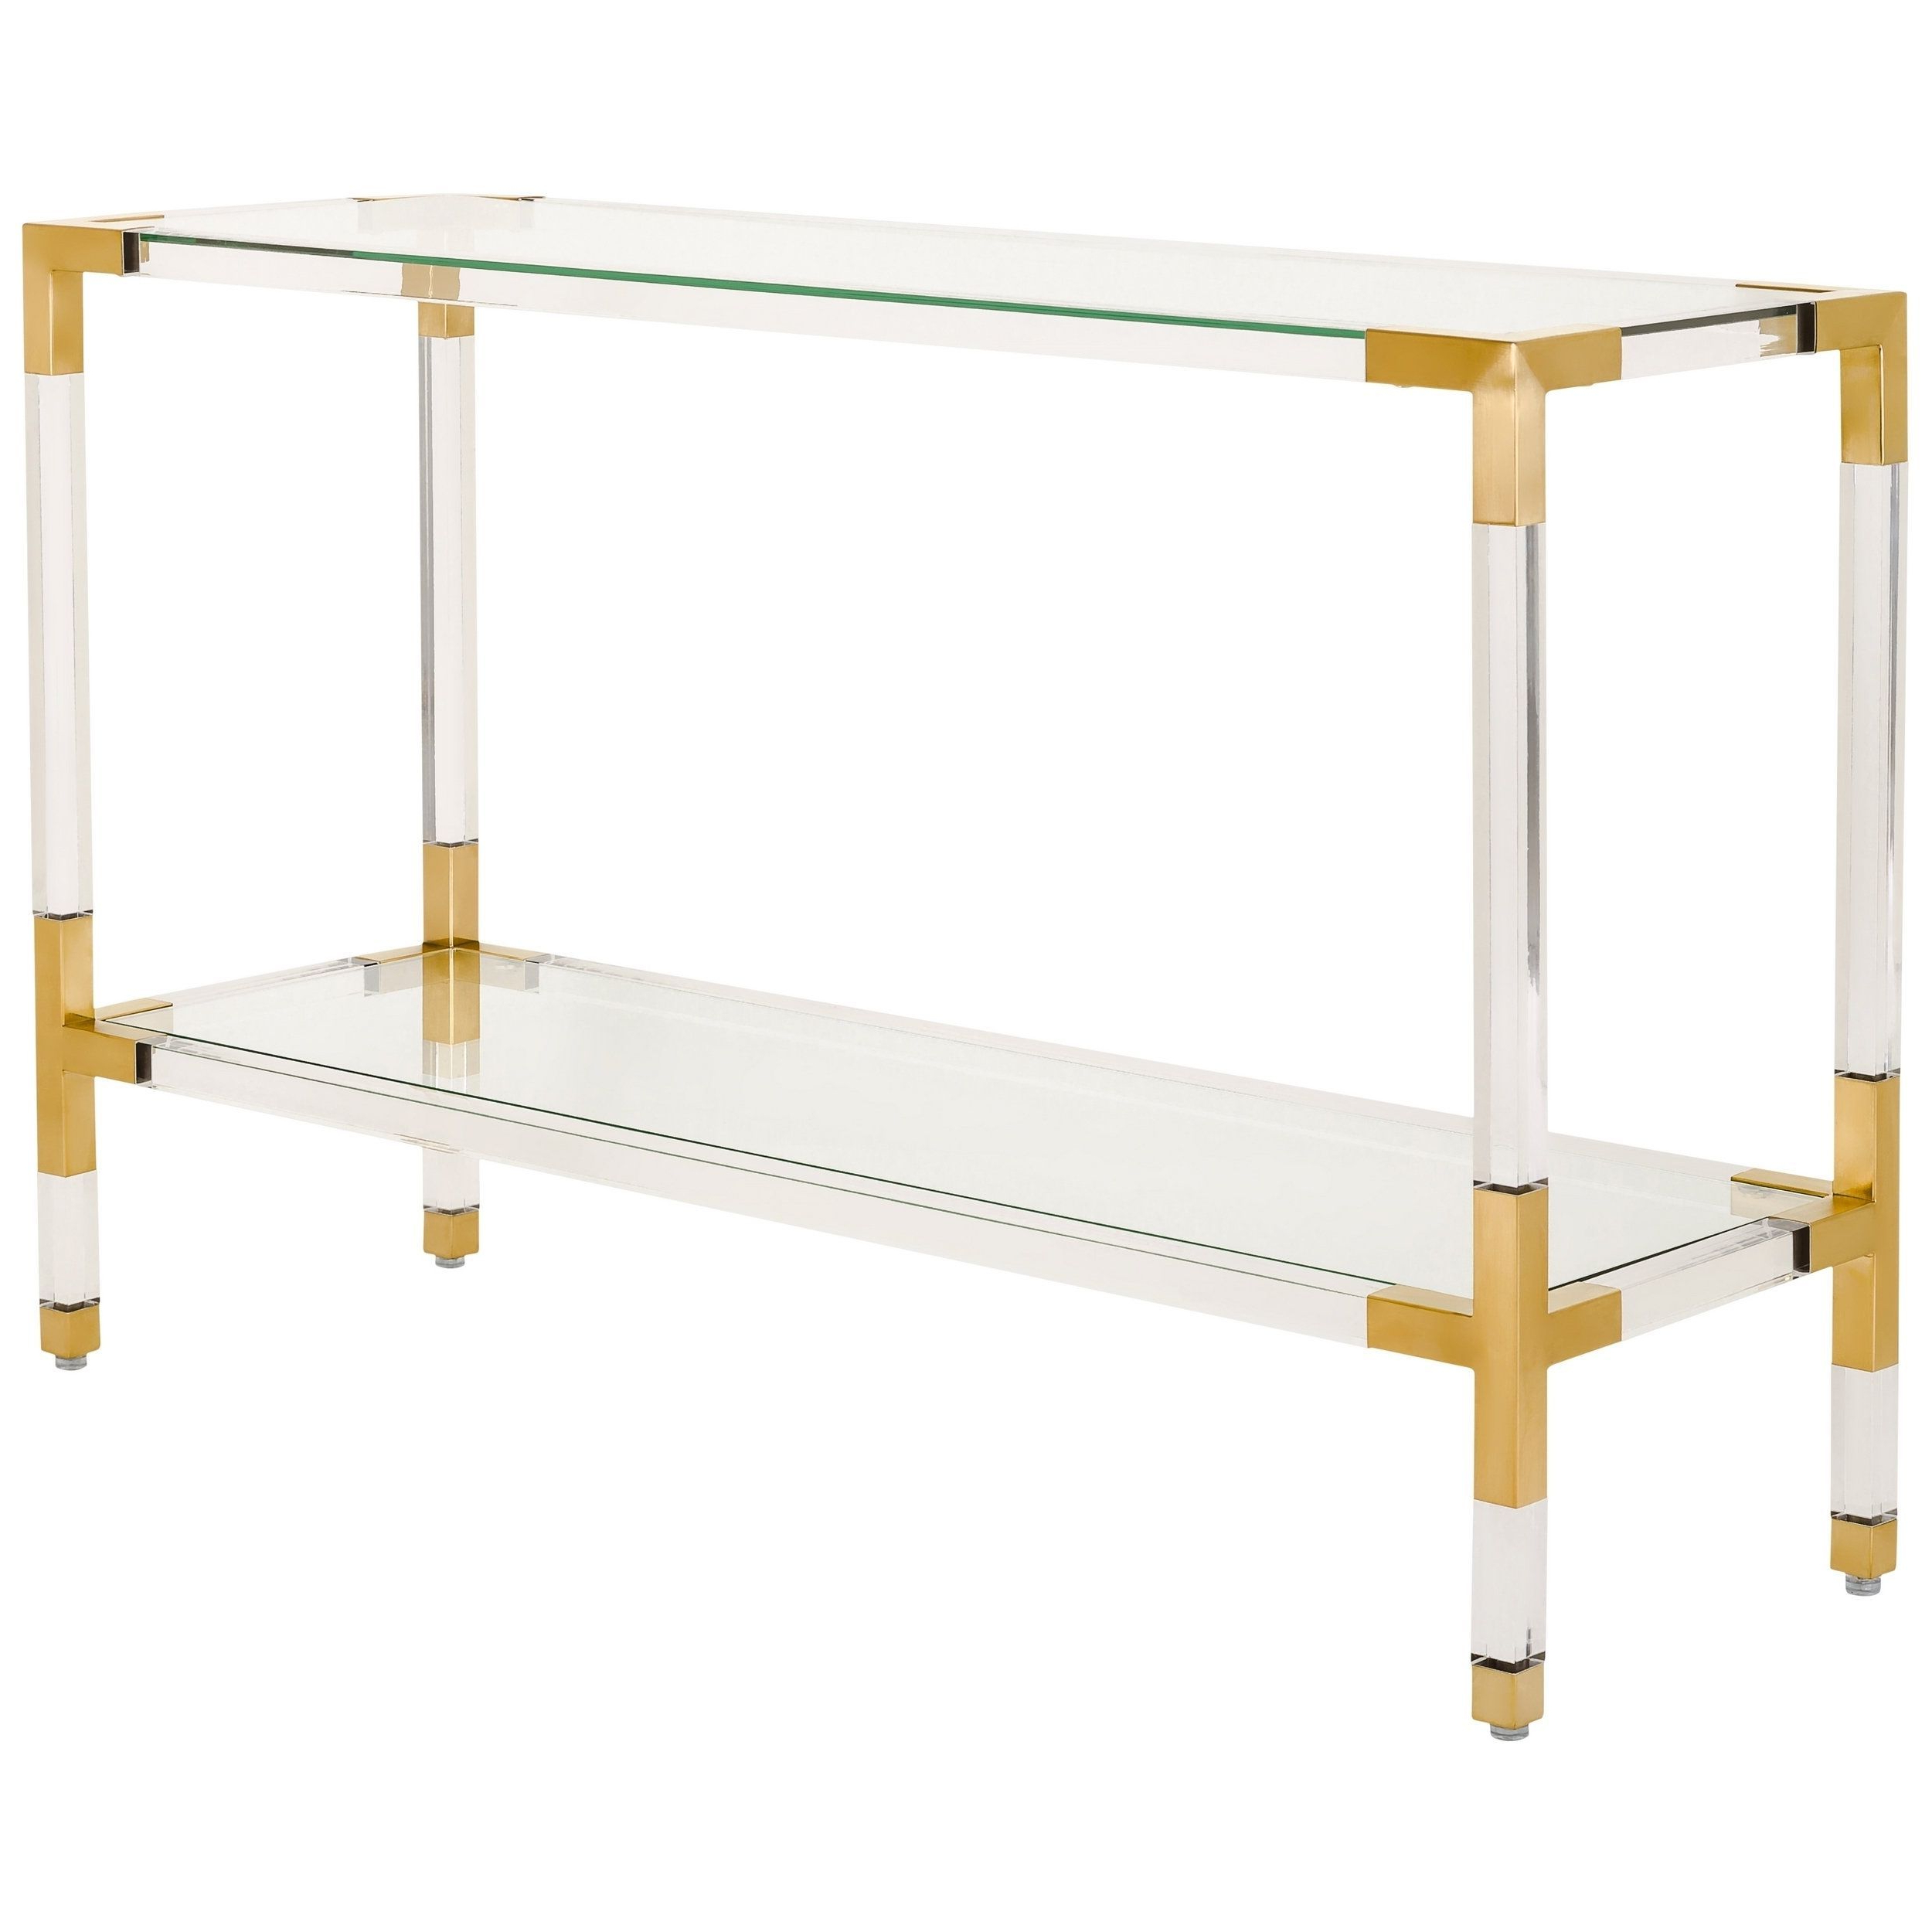 Safavieh Couture Arverne Acrylic Console , Clear | Pinterest In Parsons Clear Glass Top & Brass Base 48x16 Console Tables (View 8 of 20)